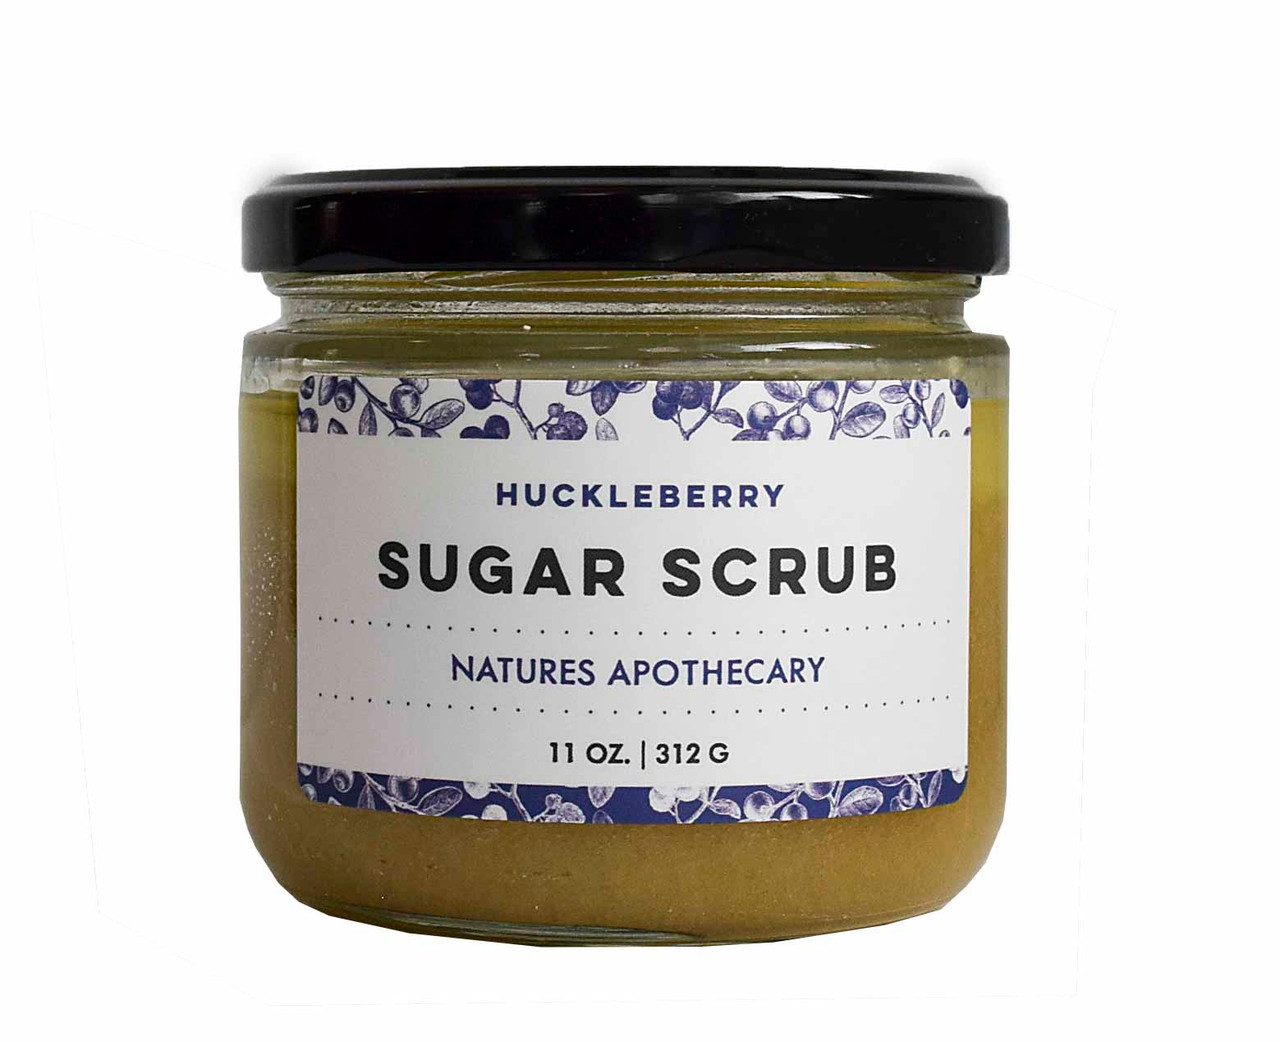 DAYSPA Body Basics Huckleberry Body Sugar Scrub = glowing, smooth, healthy skin